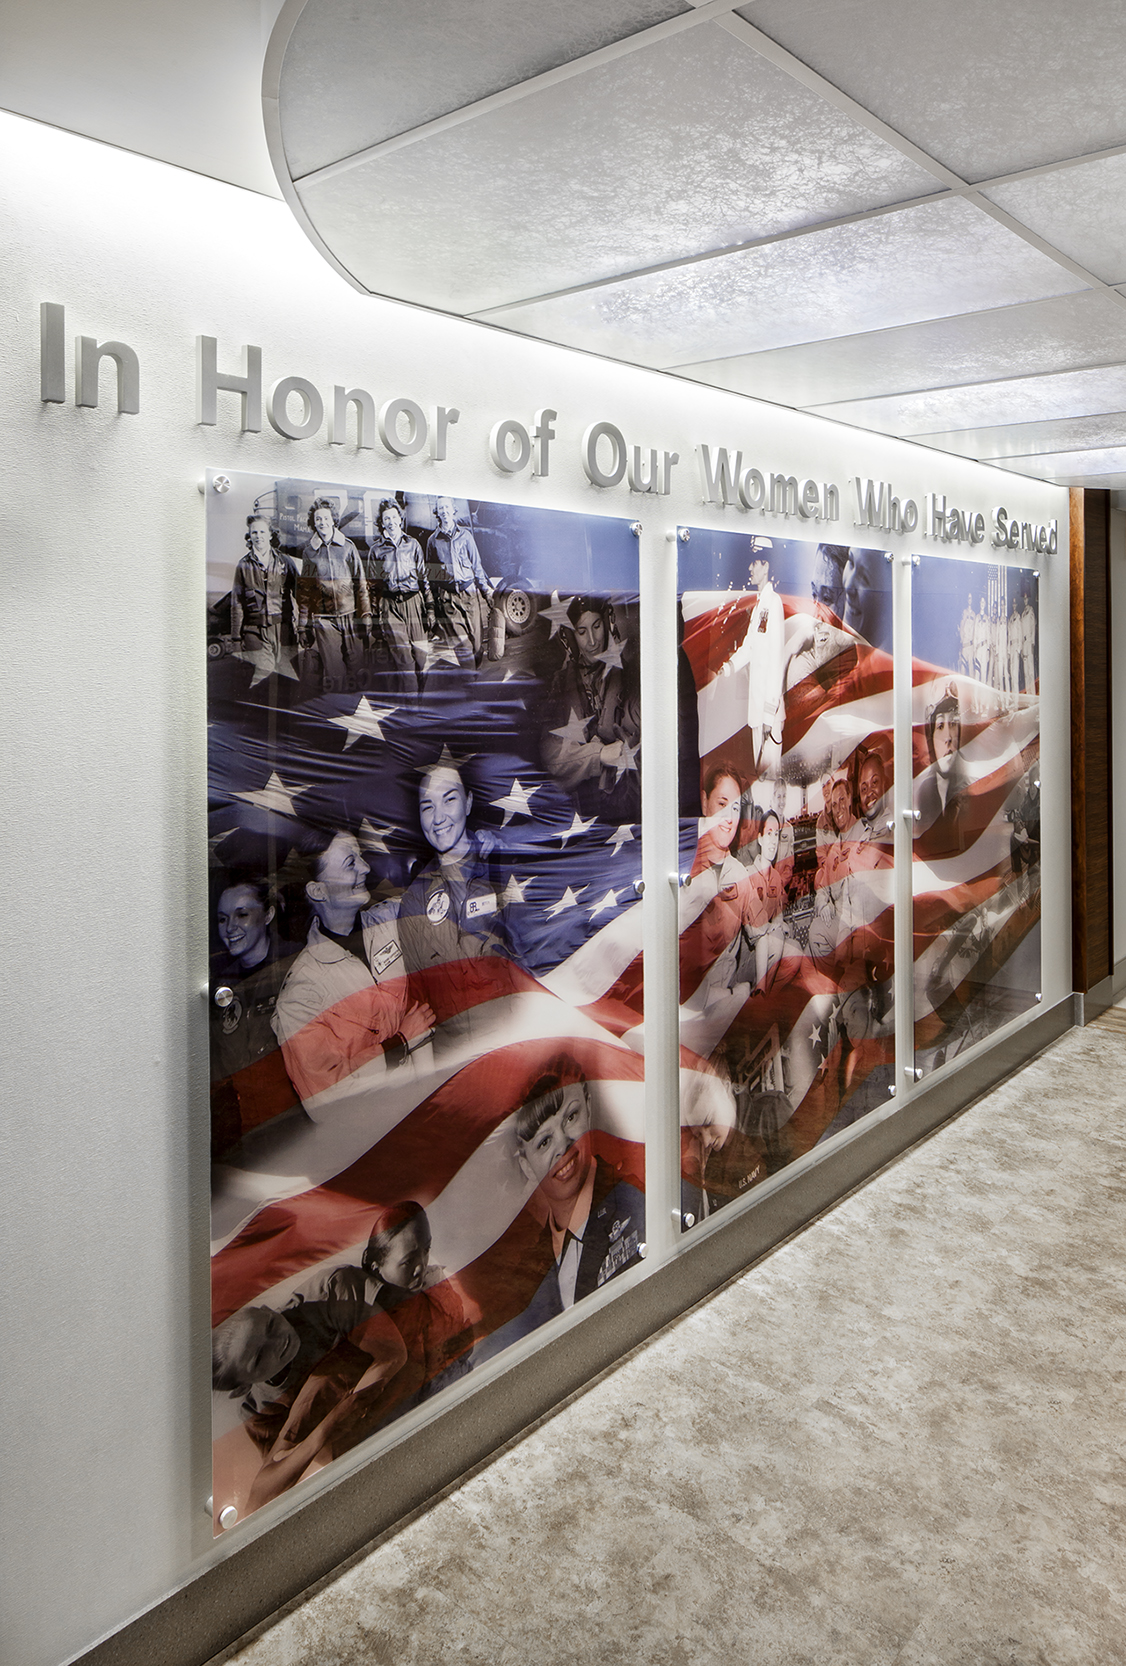 Graphics honor women in the armed services.